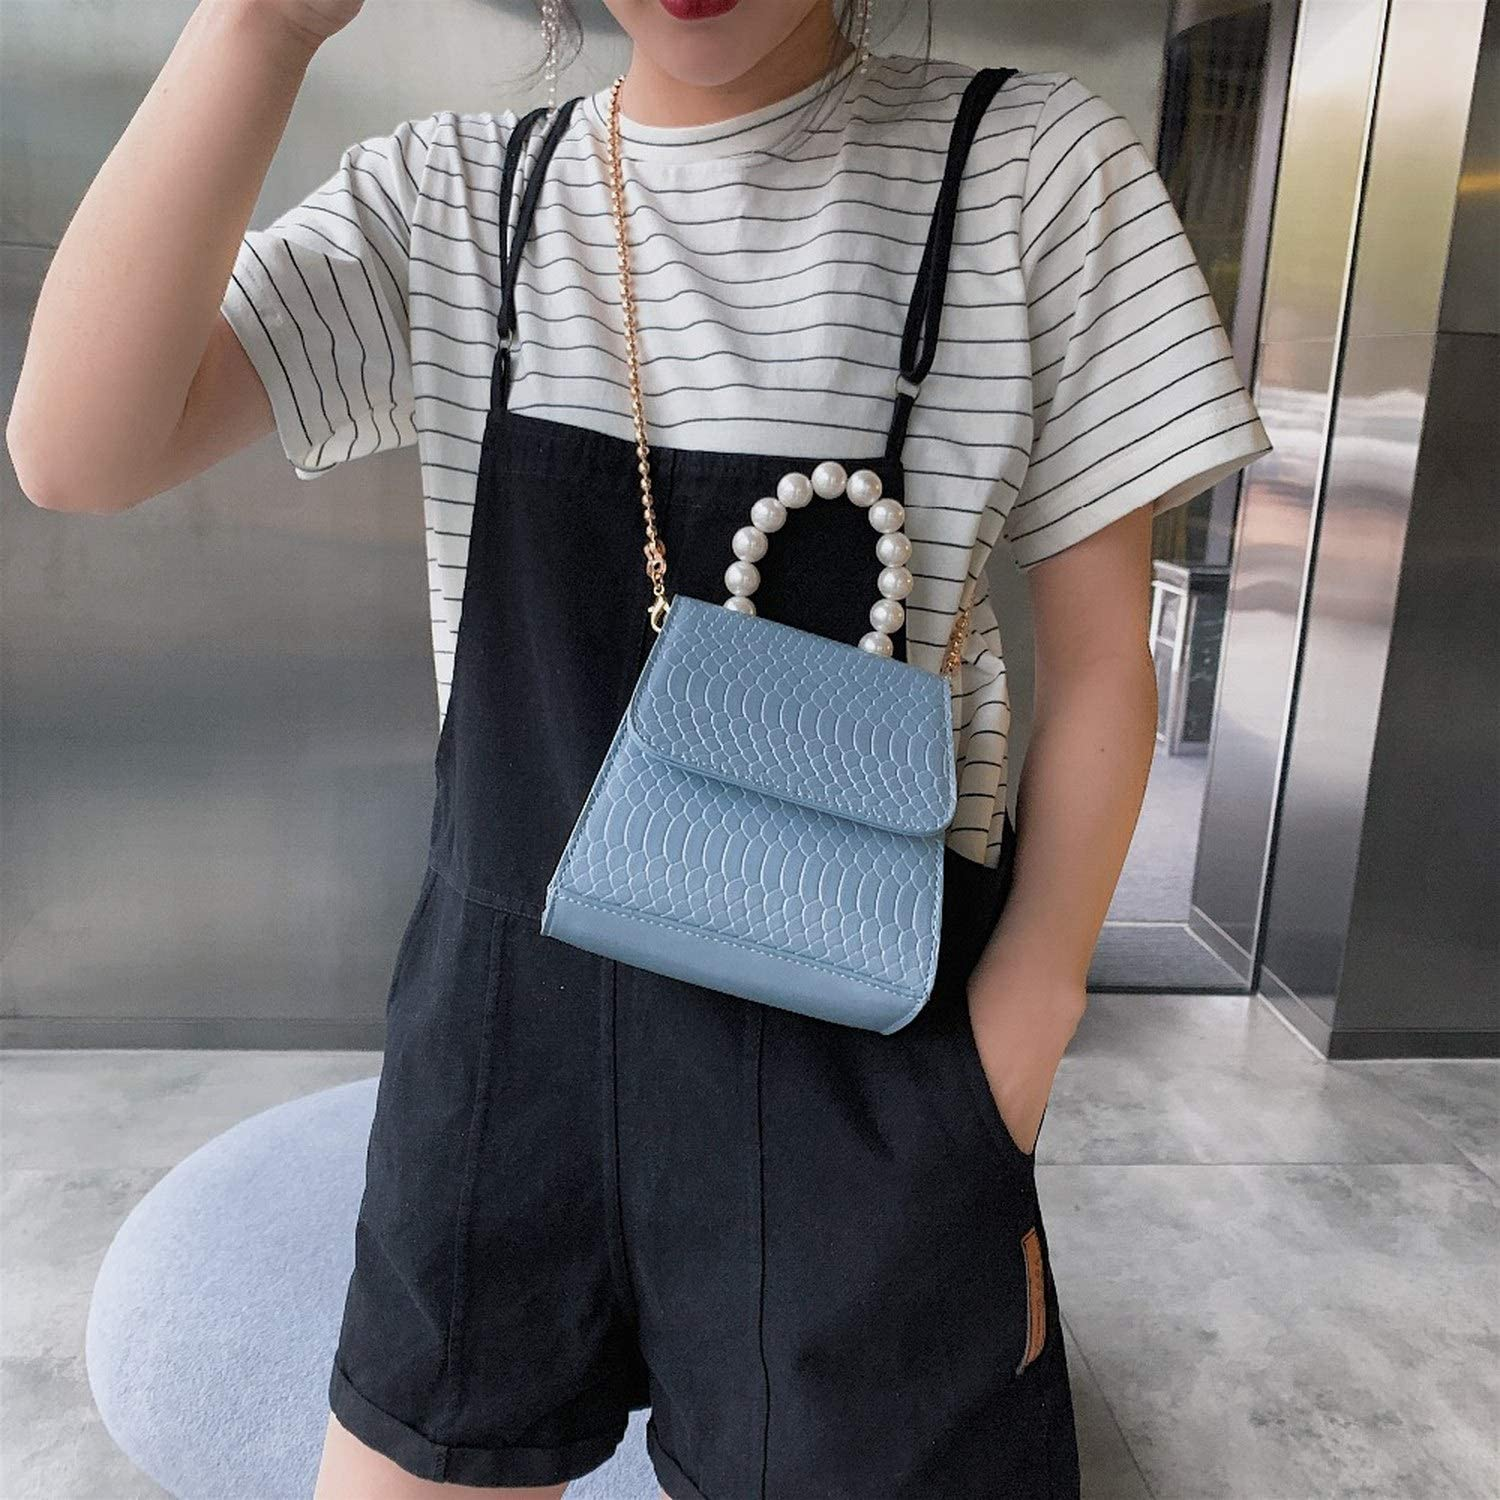 Crocodile Pattern Pu Leather Crossbody Bags For Women 2019 Totes With Pearl Handle Mini Chain Shoulder Messenger Bag Purses